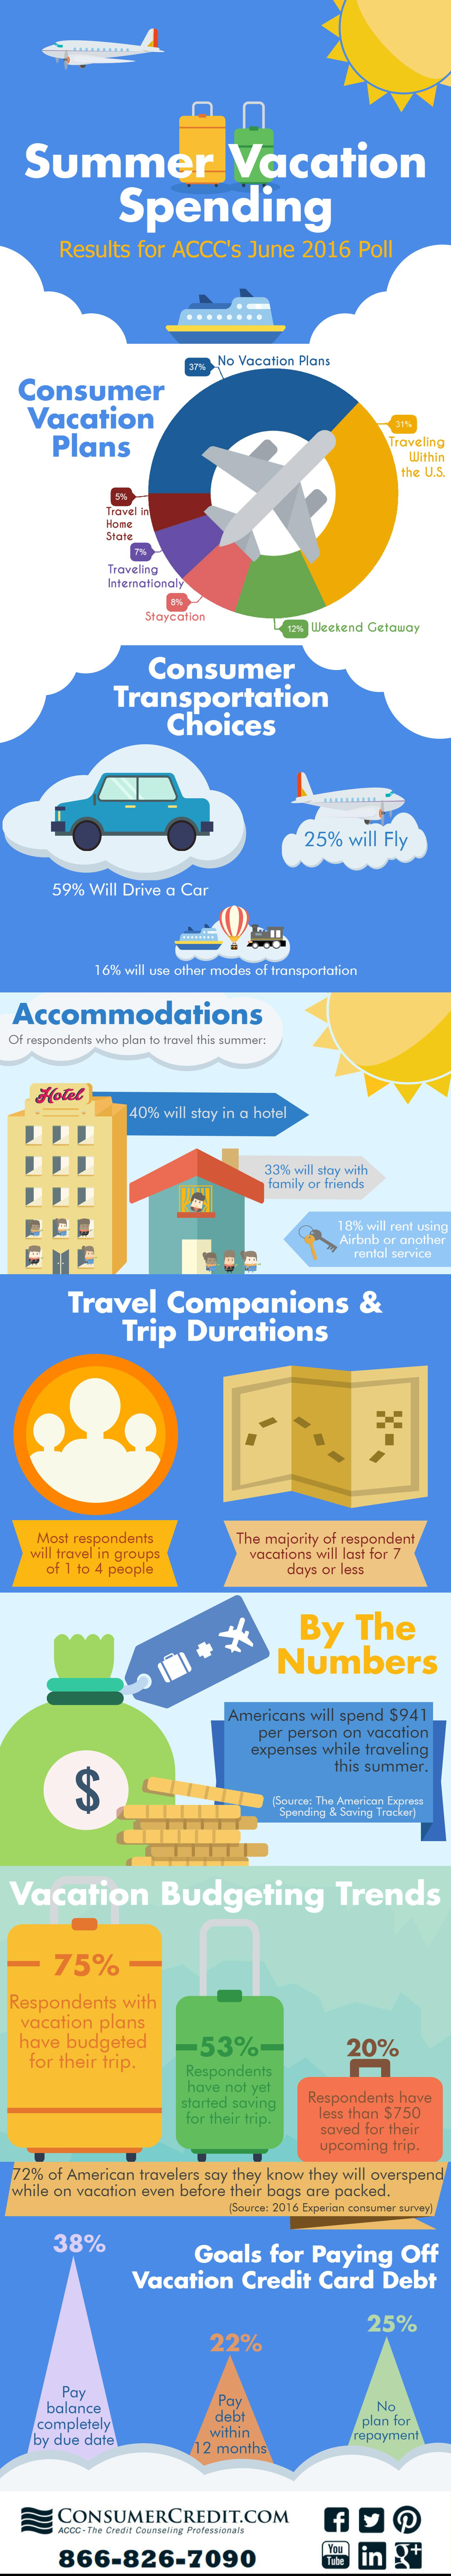 Many Consumers Planning To Stay In The U S For Summer Vacation